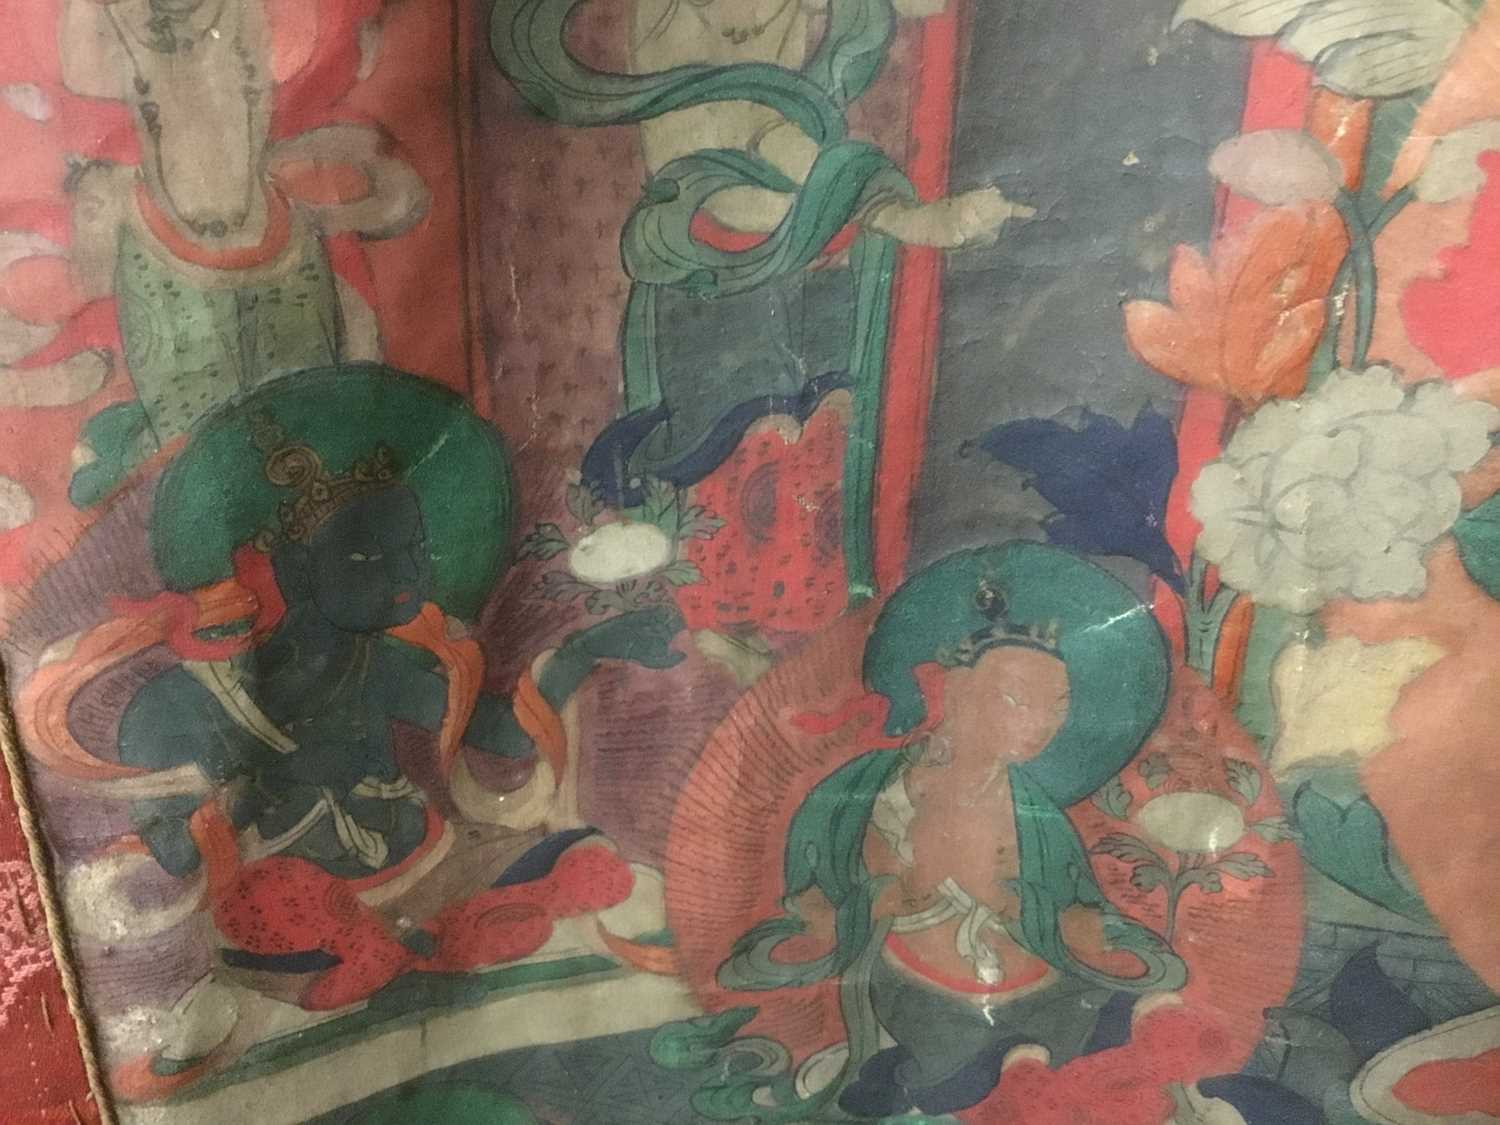 Early Tibetan thangka together with a related framed letter - Image 13 of 14